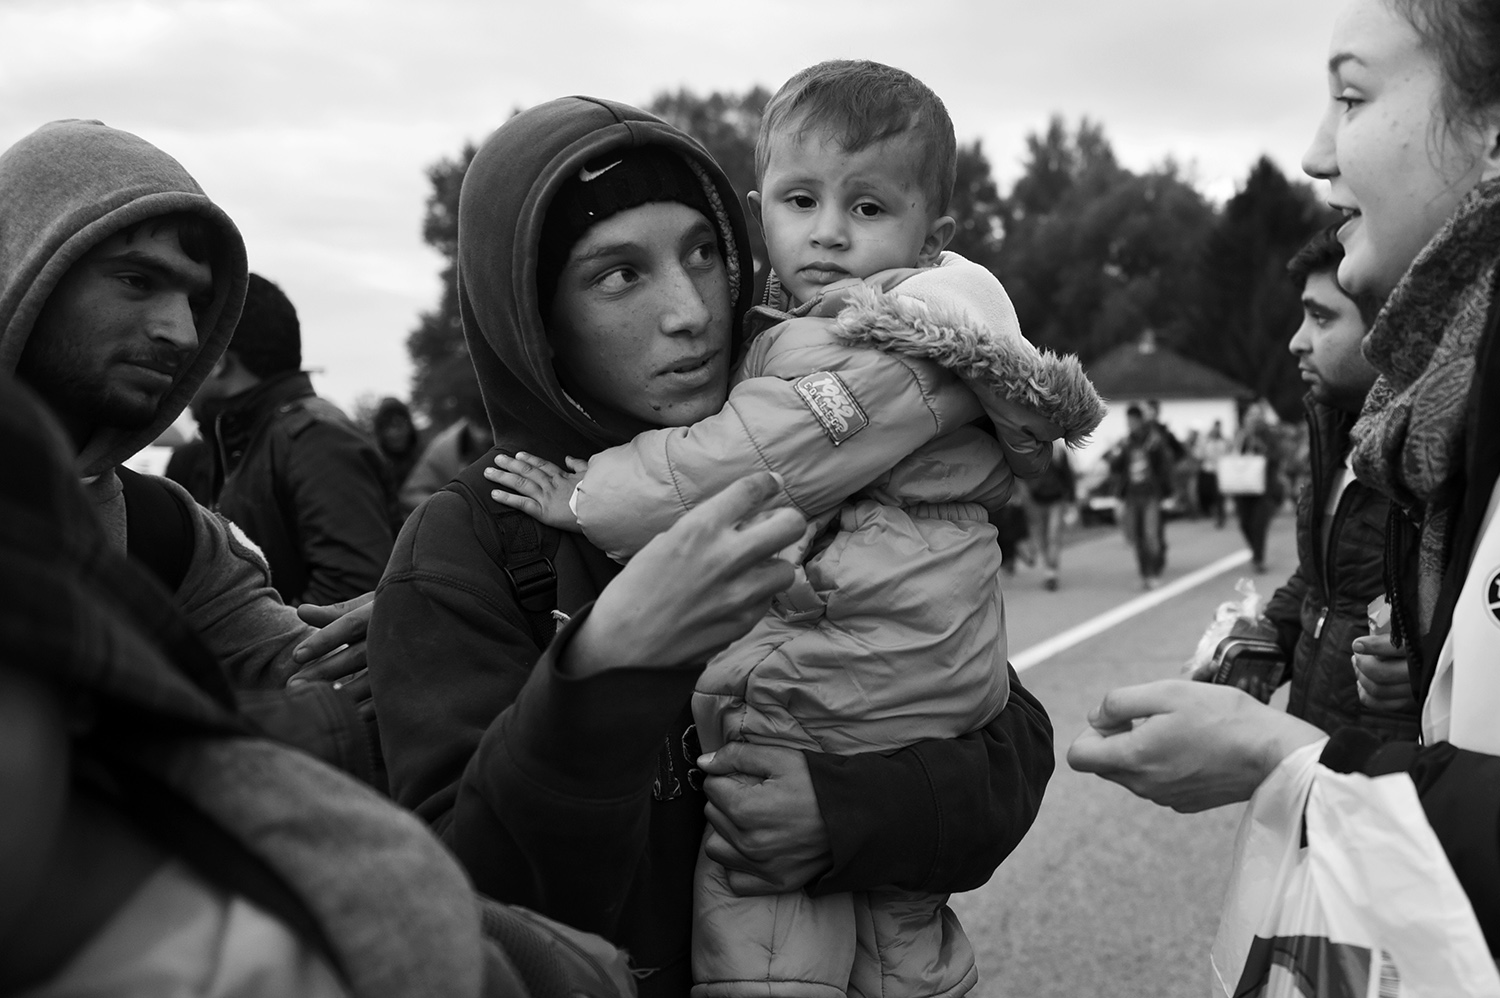 The boy holds a child while he talks to volunteers who distribute food and clothing to refugees who arrived in a place Botovo, near Koprivnica, Croatia. Several thousand refugees arrived by train and started to walk towards the Hungarian border, which will be closed after a few hours.